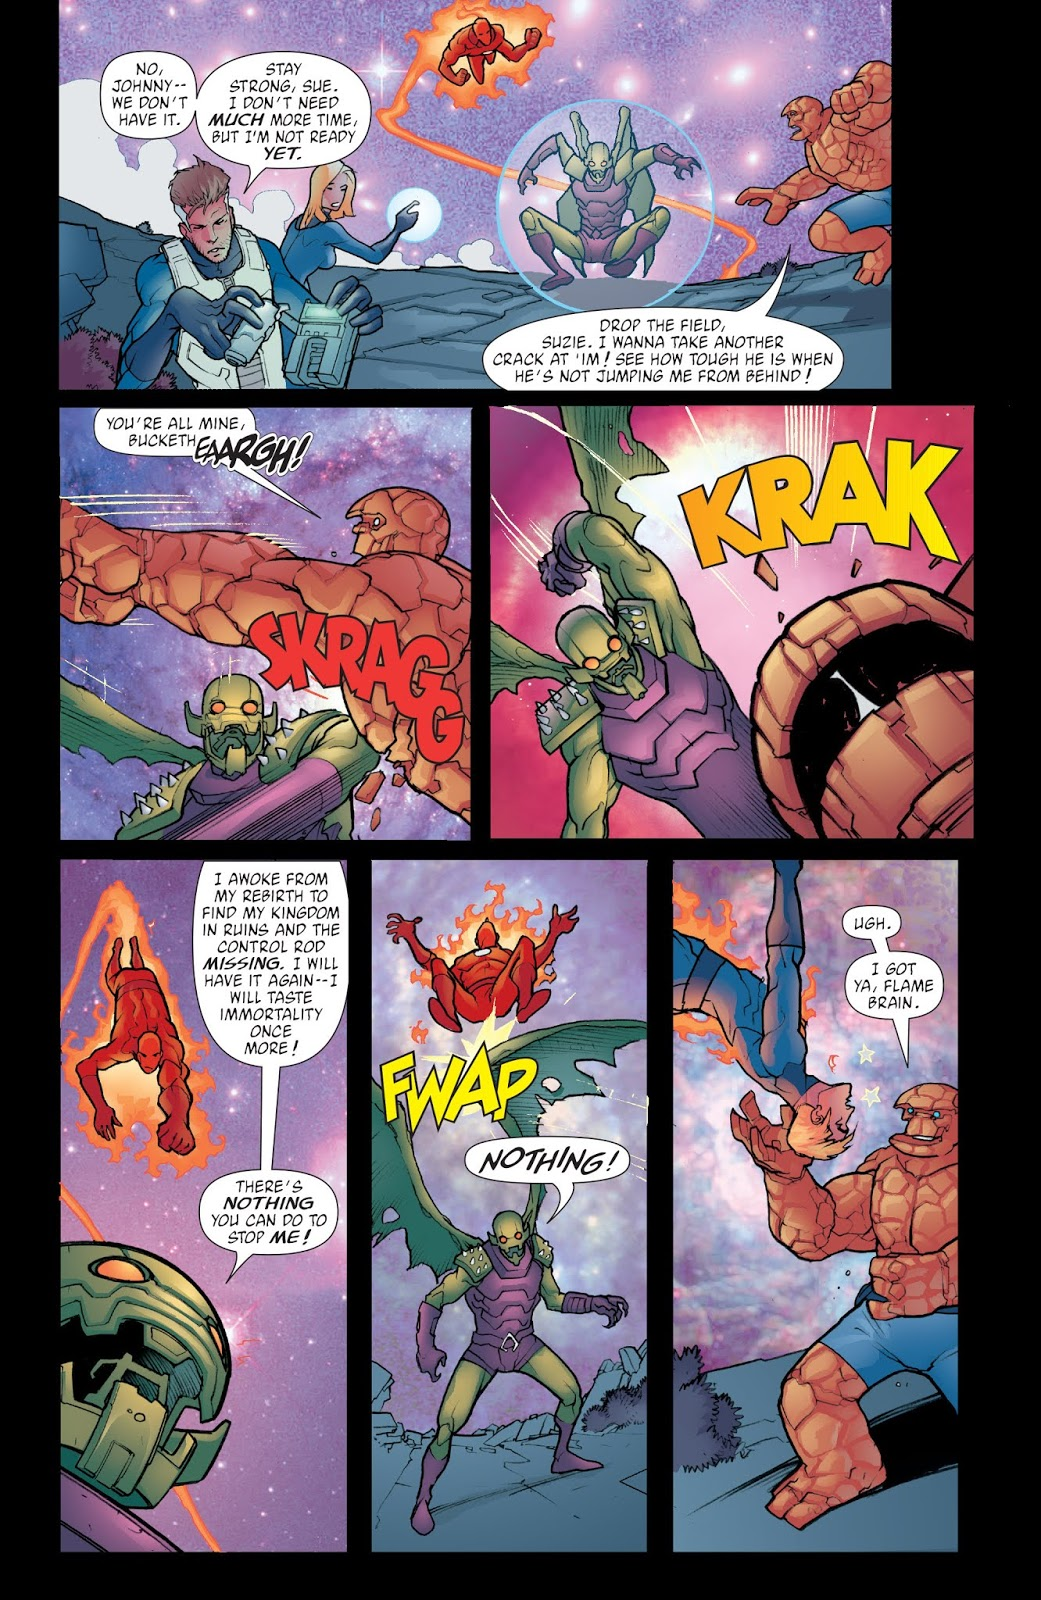 Fantastic Four Foes review